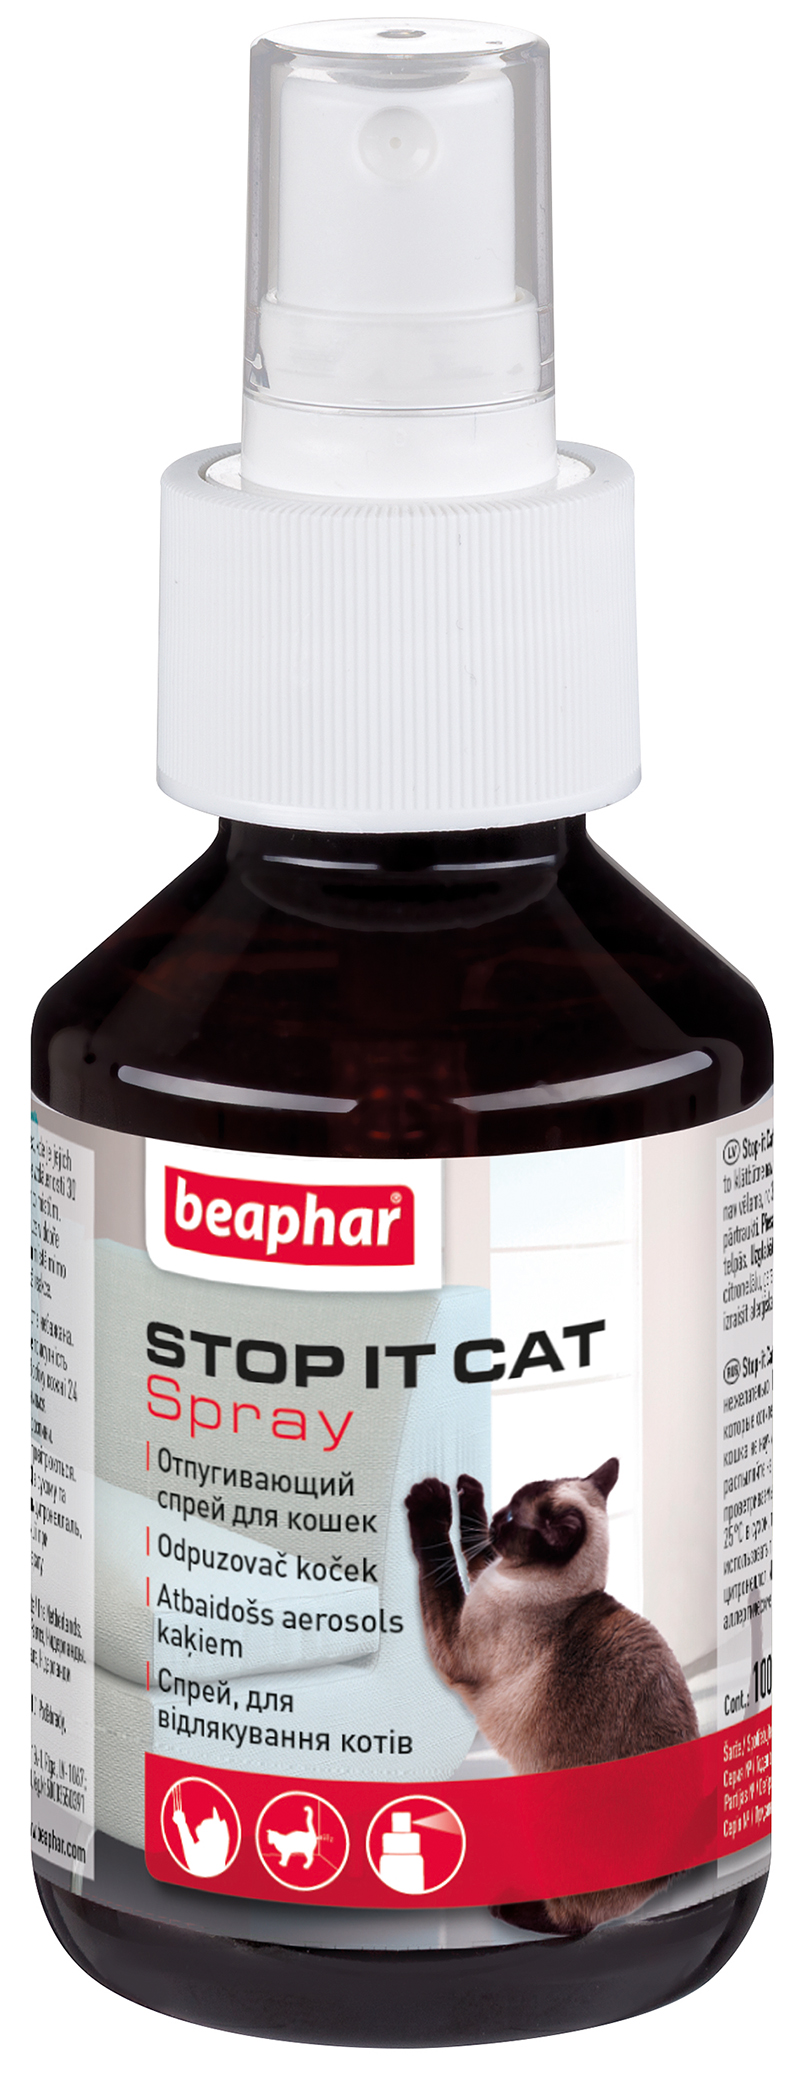 Beaphar Stop-it Cat katei atbaidyti 100ml